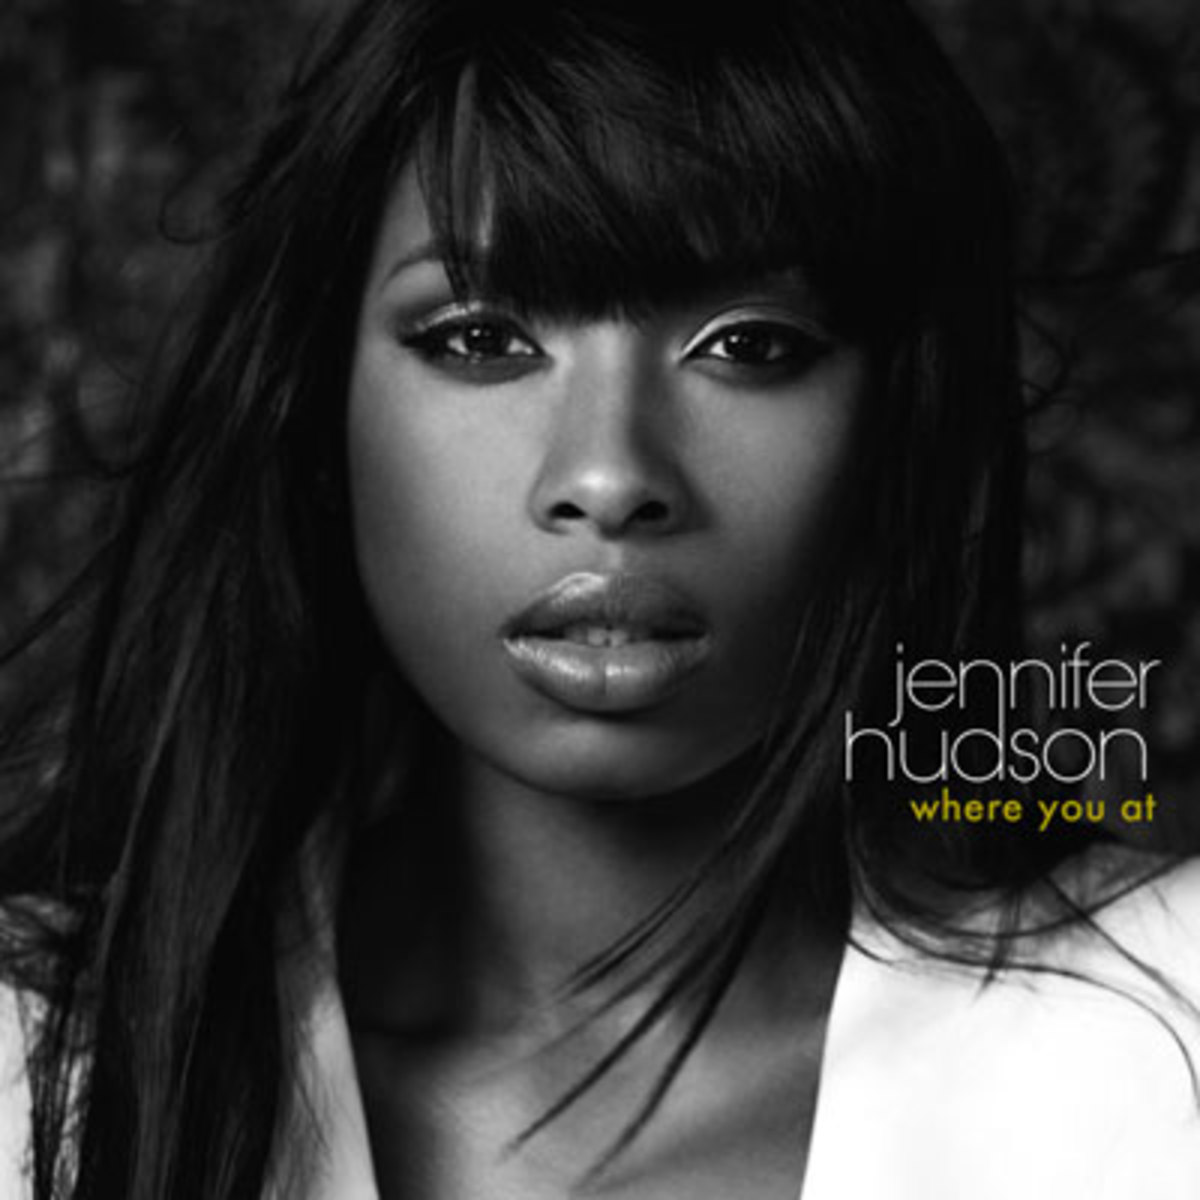 jenniferhudson-whereuat.jpg